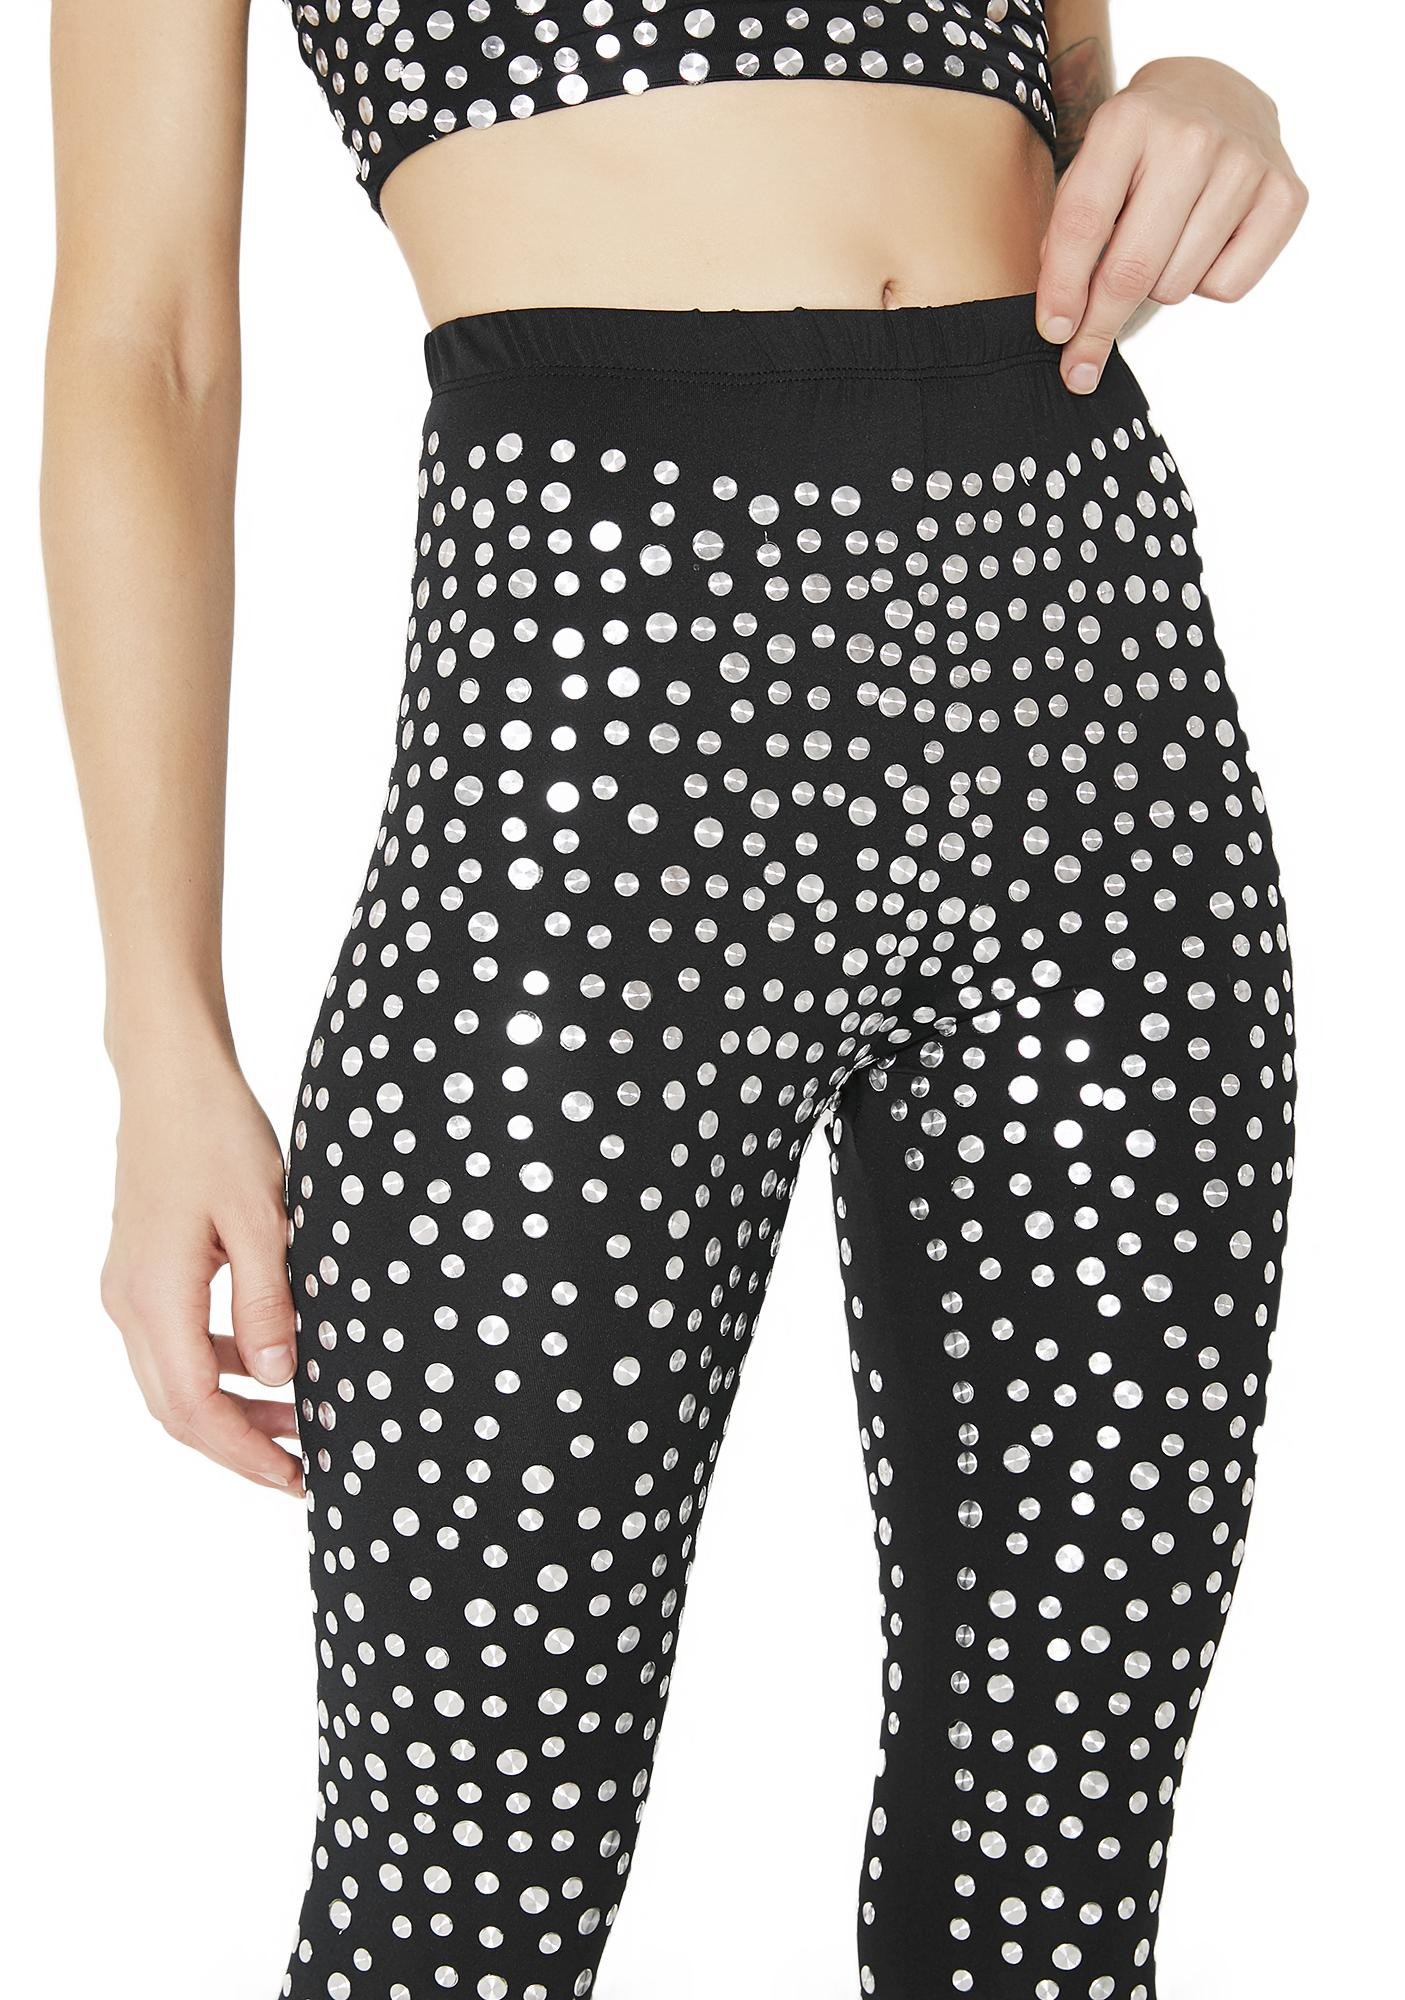 Kiki Riki Easy Money Studded Leggings